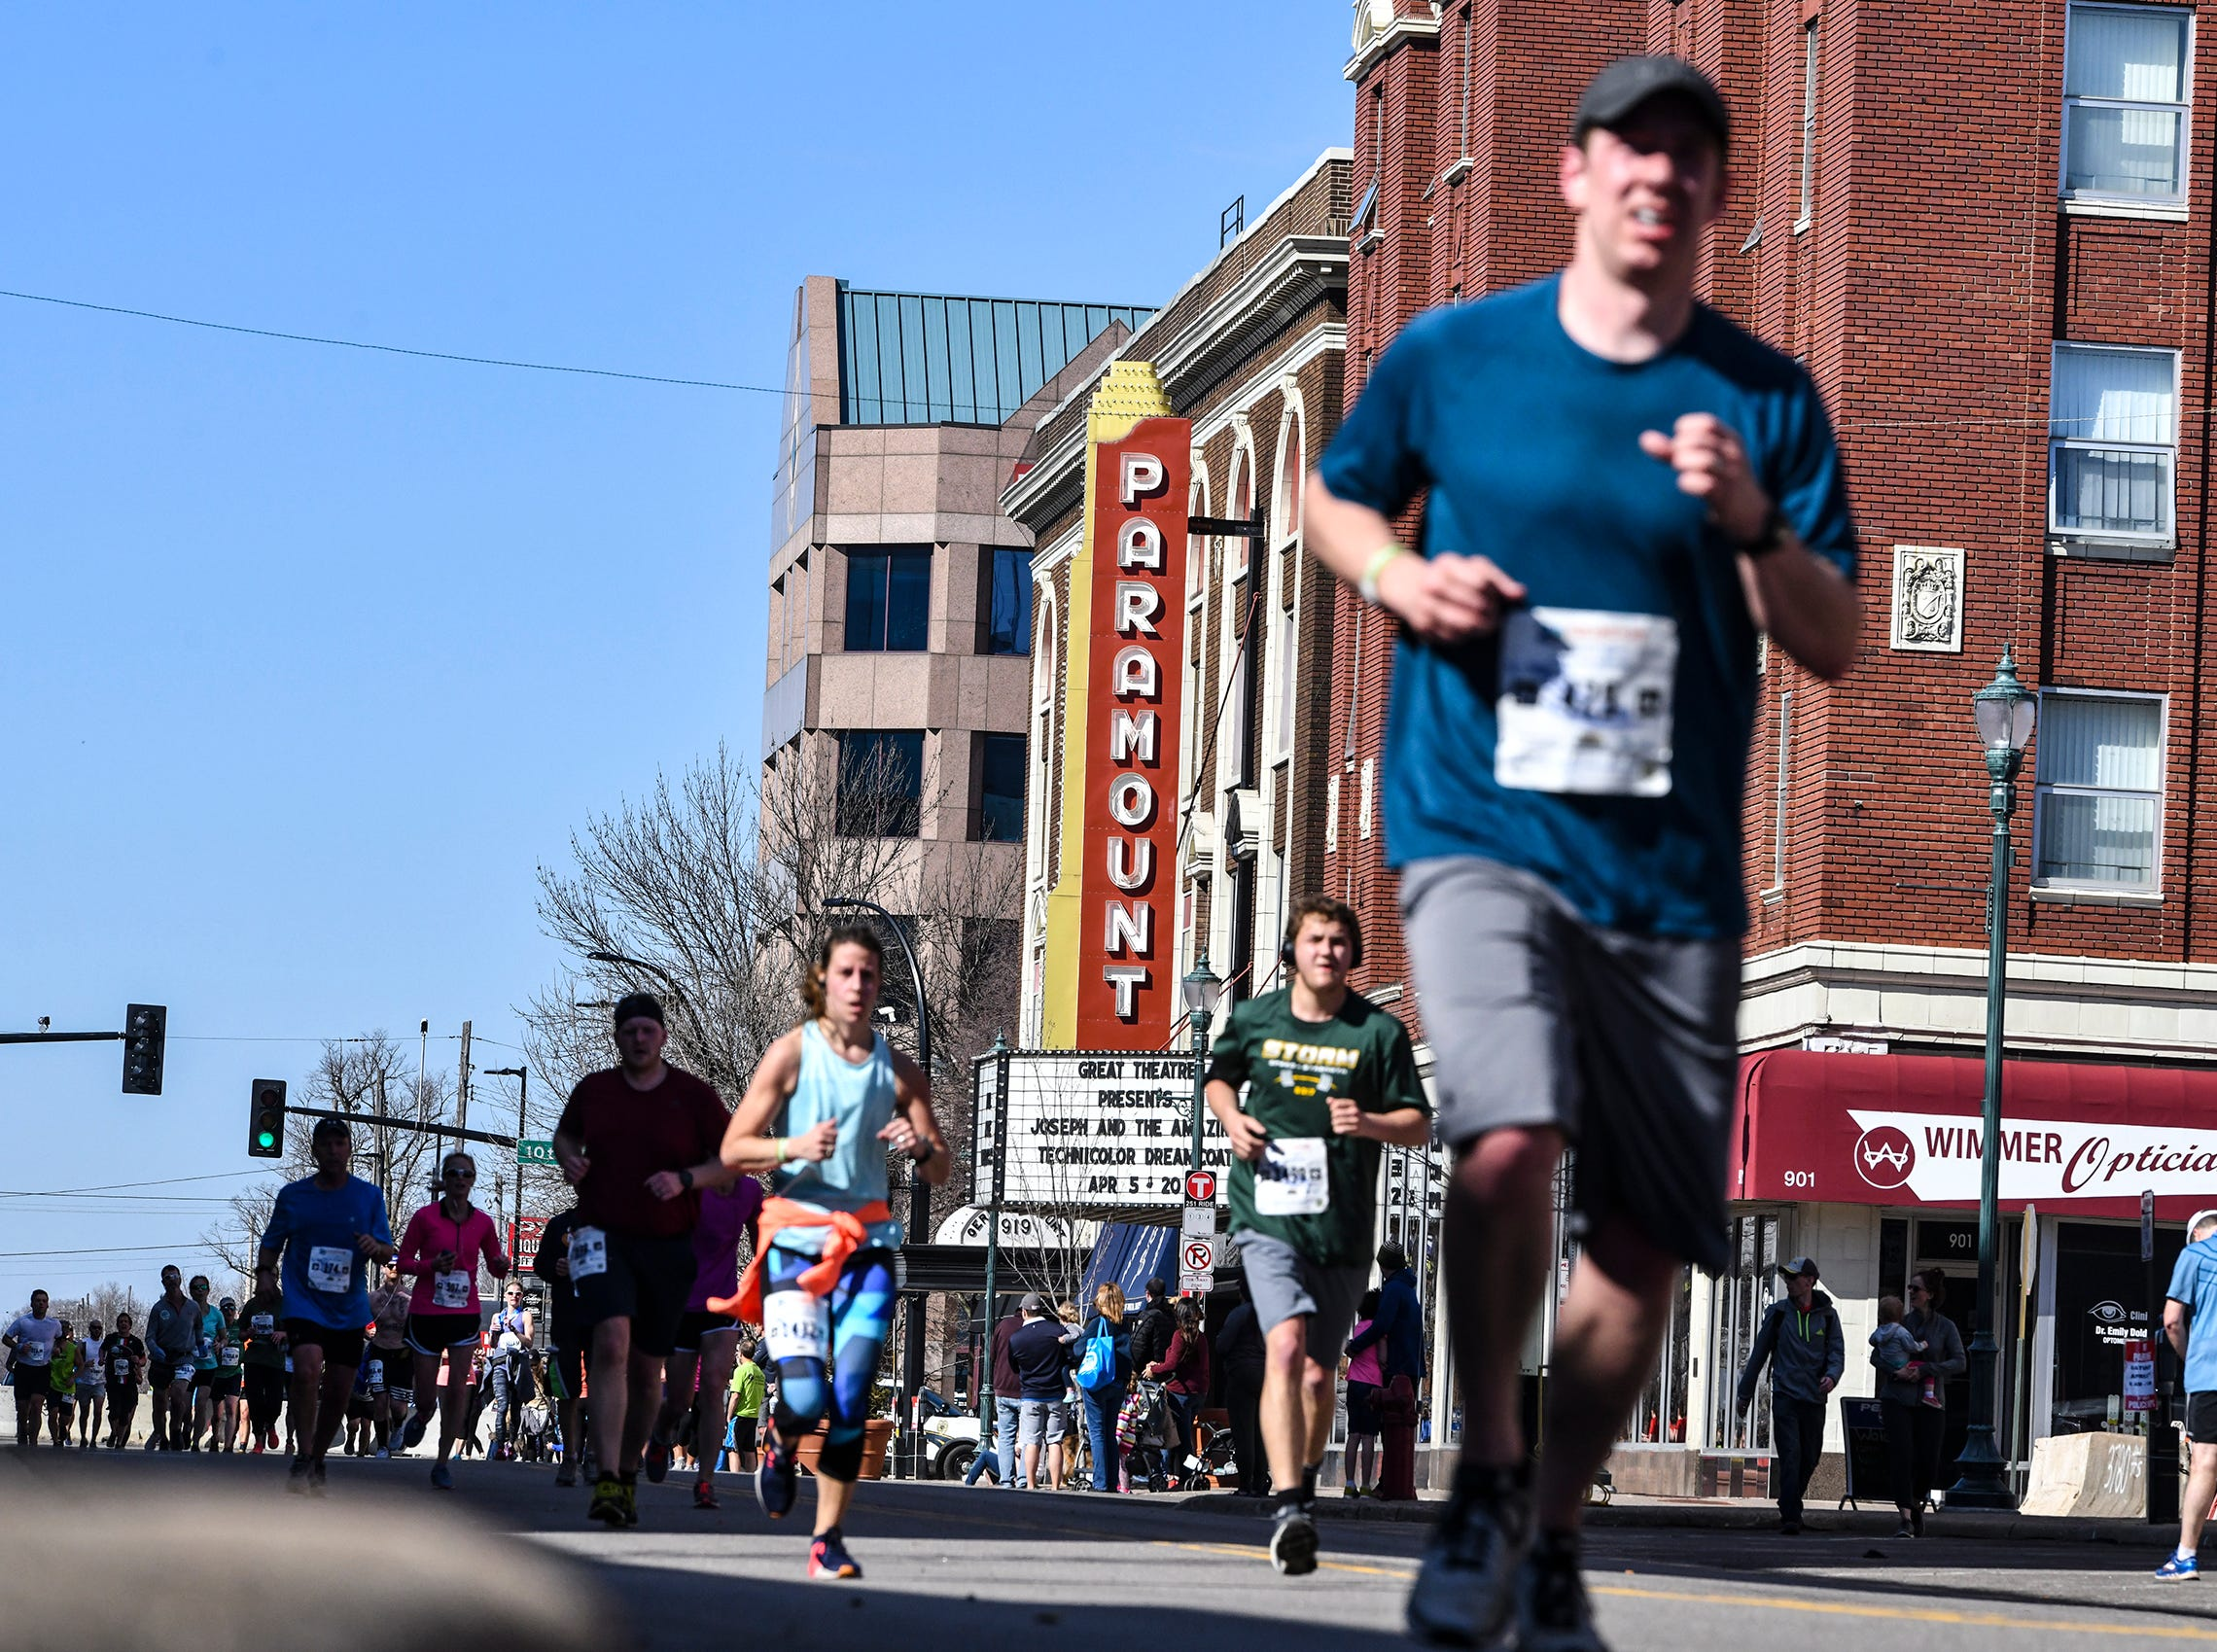 Runners follow the course down St. Germain Street toward the finish line during the Cetera Half Marathon as part of CentraCare Health Earth Day Run activities Saturday, April 20, in downtown St. Cloud.